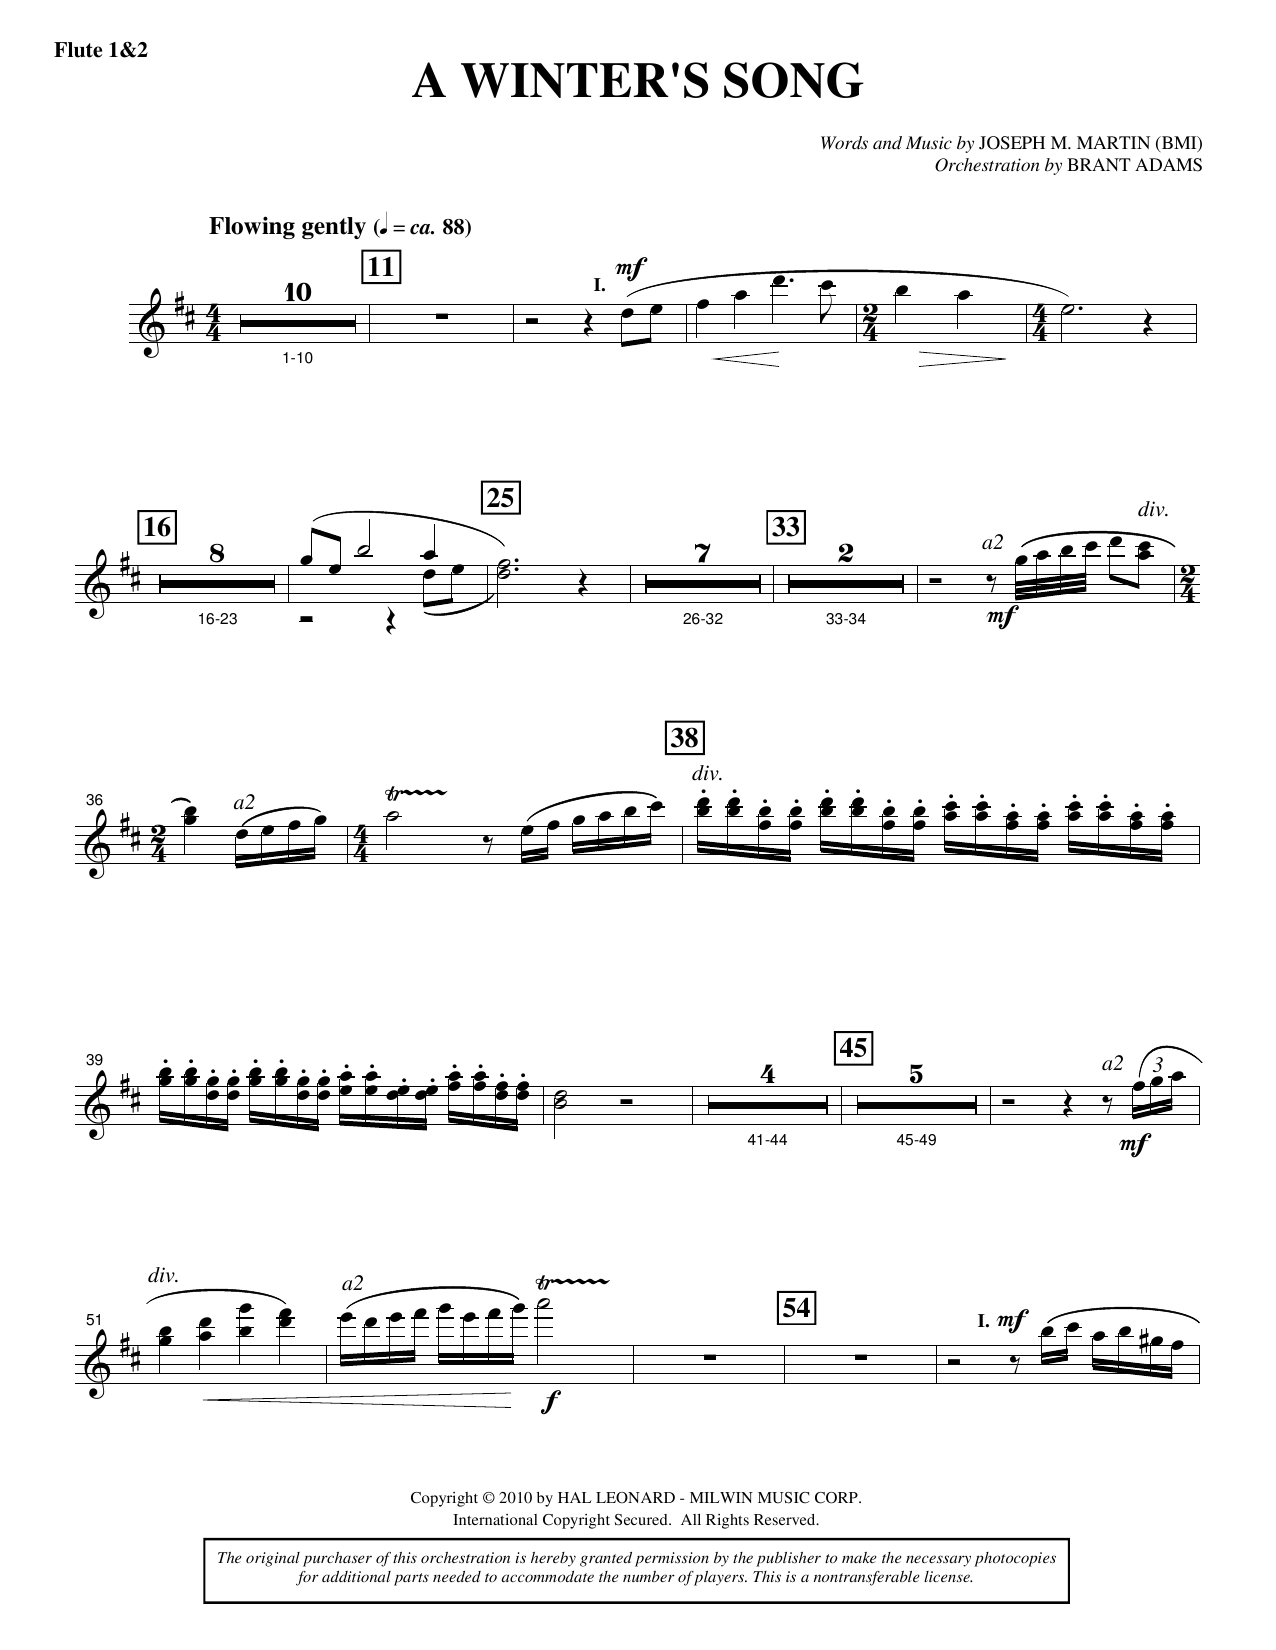 Joseph M. Martin A Winter's Song (from Winter's Grace) - Flute 1 & 2 sheet music notes printable PDF score